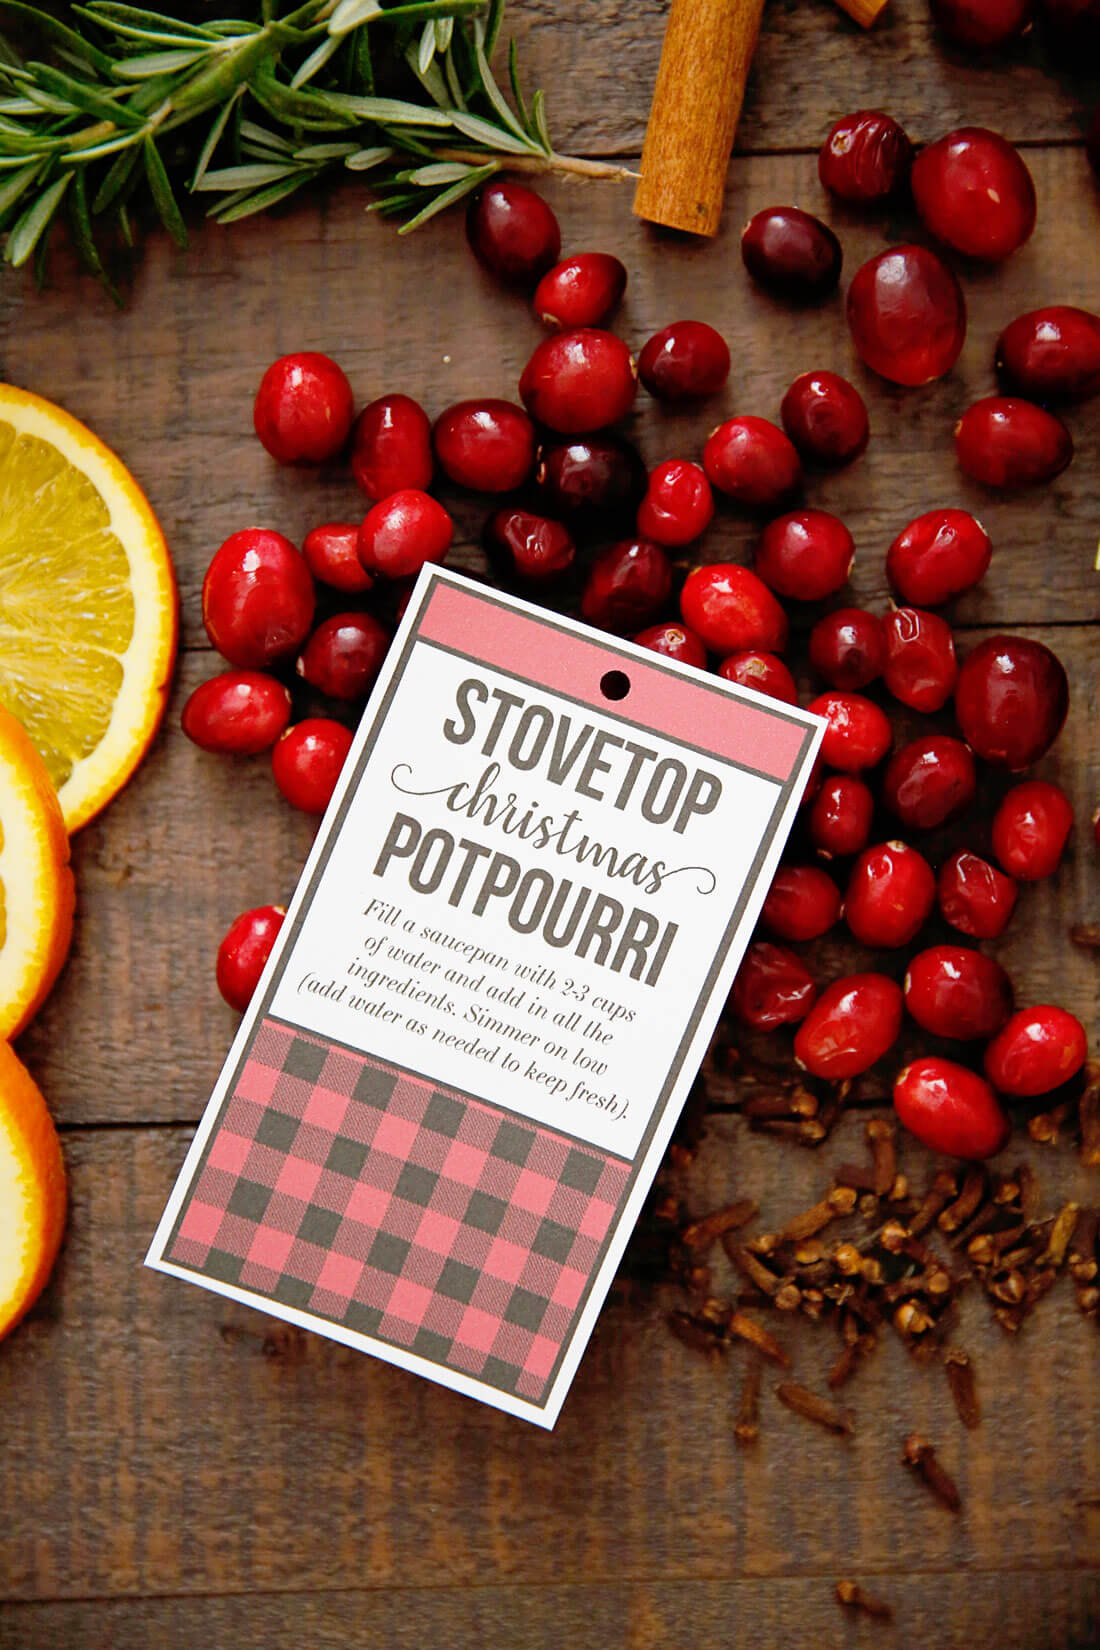 Stovetop Christmas Potpourri - make this and your house will smell AMAZING! It's like Christmas in a pot. via www.thirtyhandmadedays.com